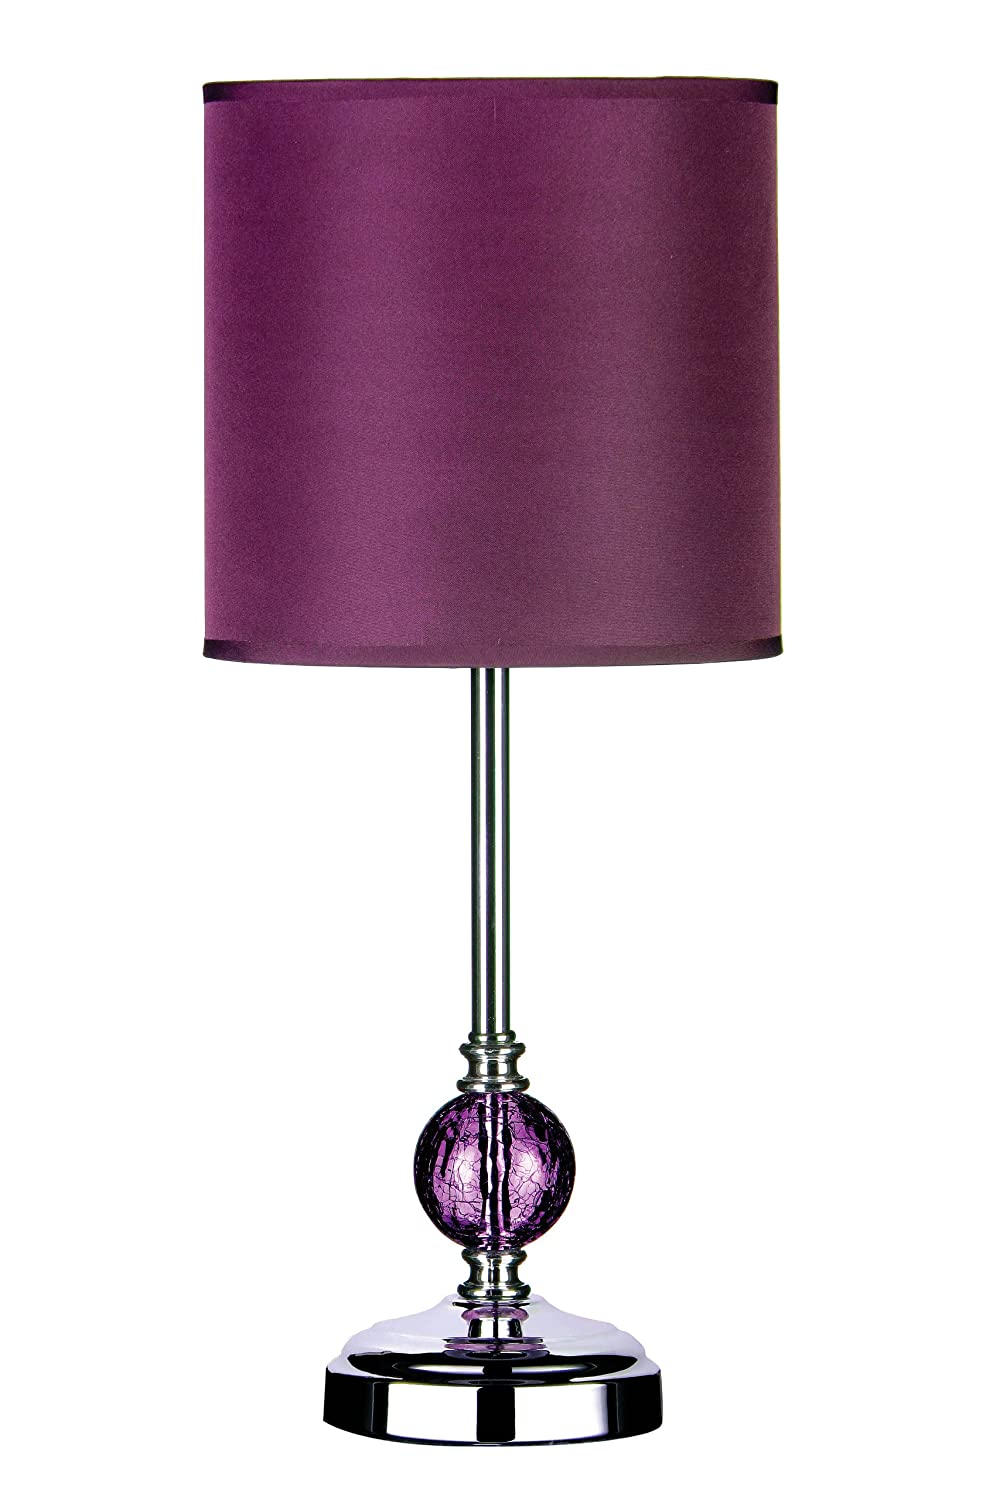 Premier housewares chrome table lamp with purple glass ball and premier housewares chrome table lamp with purple glass ball and purple shade amazon lighting mozeypictures Image collections